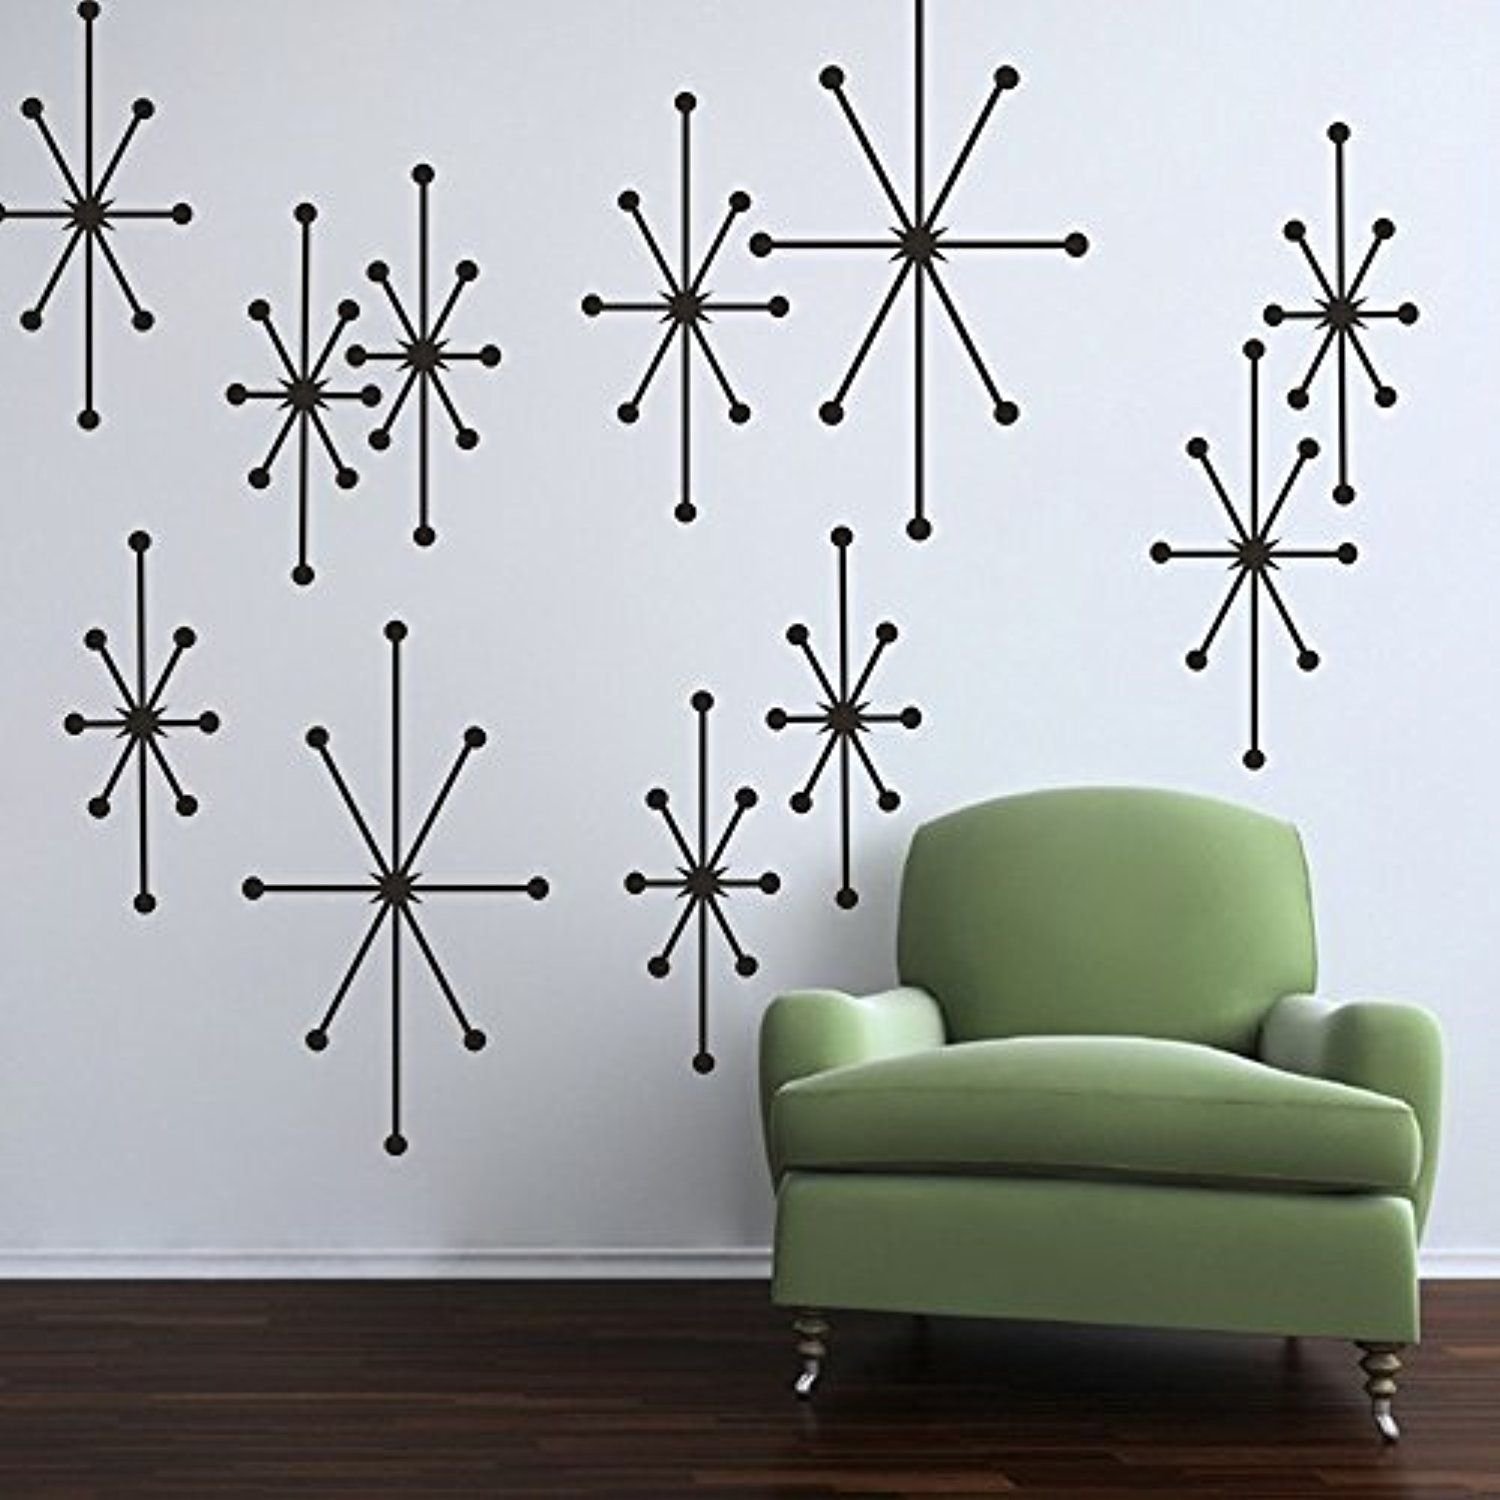 Wall Decal Decor Starburst Wall Decals Retro Wall Decor Custom Vinyl In Starburst Wall Art (View 19 of 20)